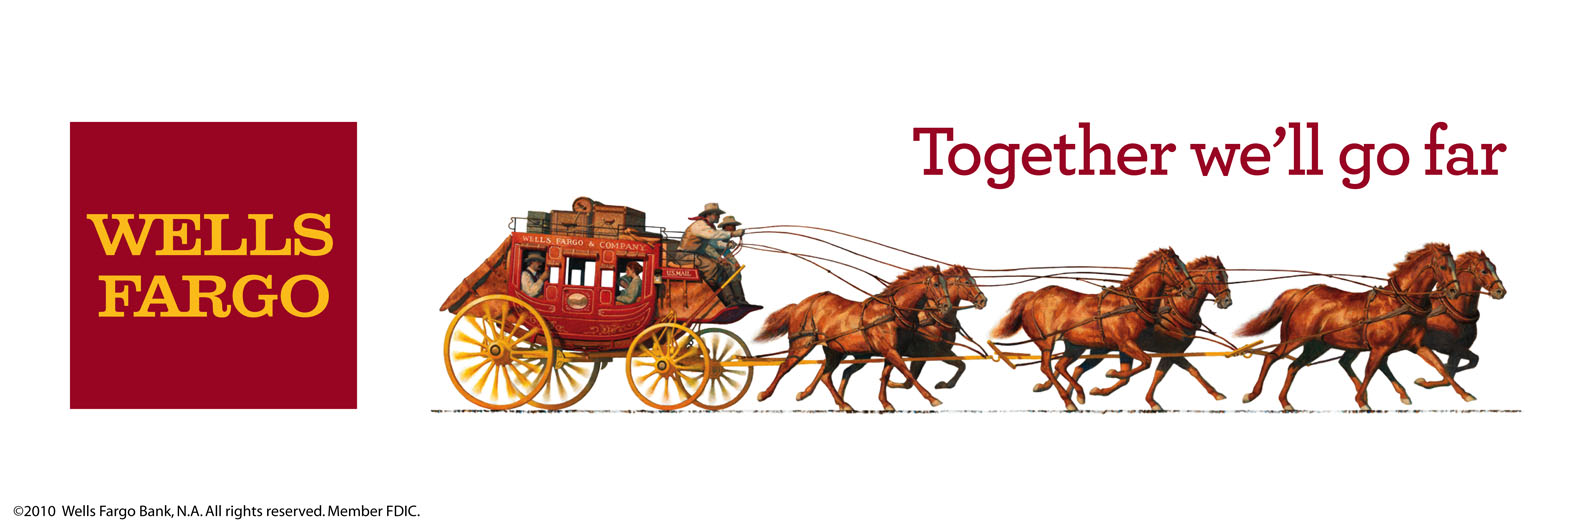 Dream Car Wallpaper Wells Fargo Stagecoach Logo Png Generic2 Vbec